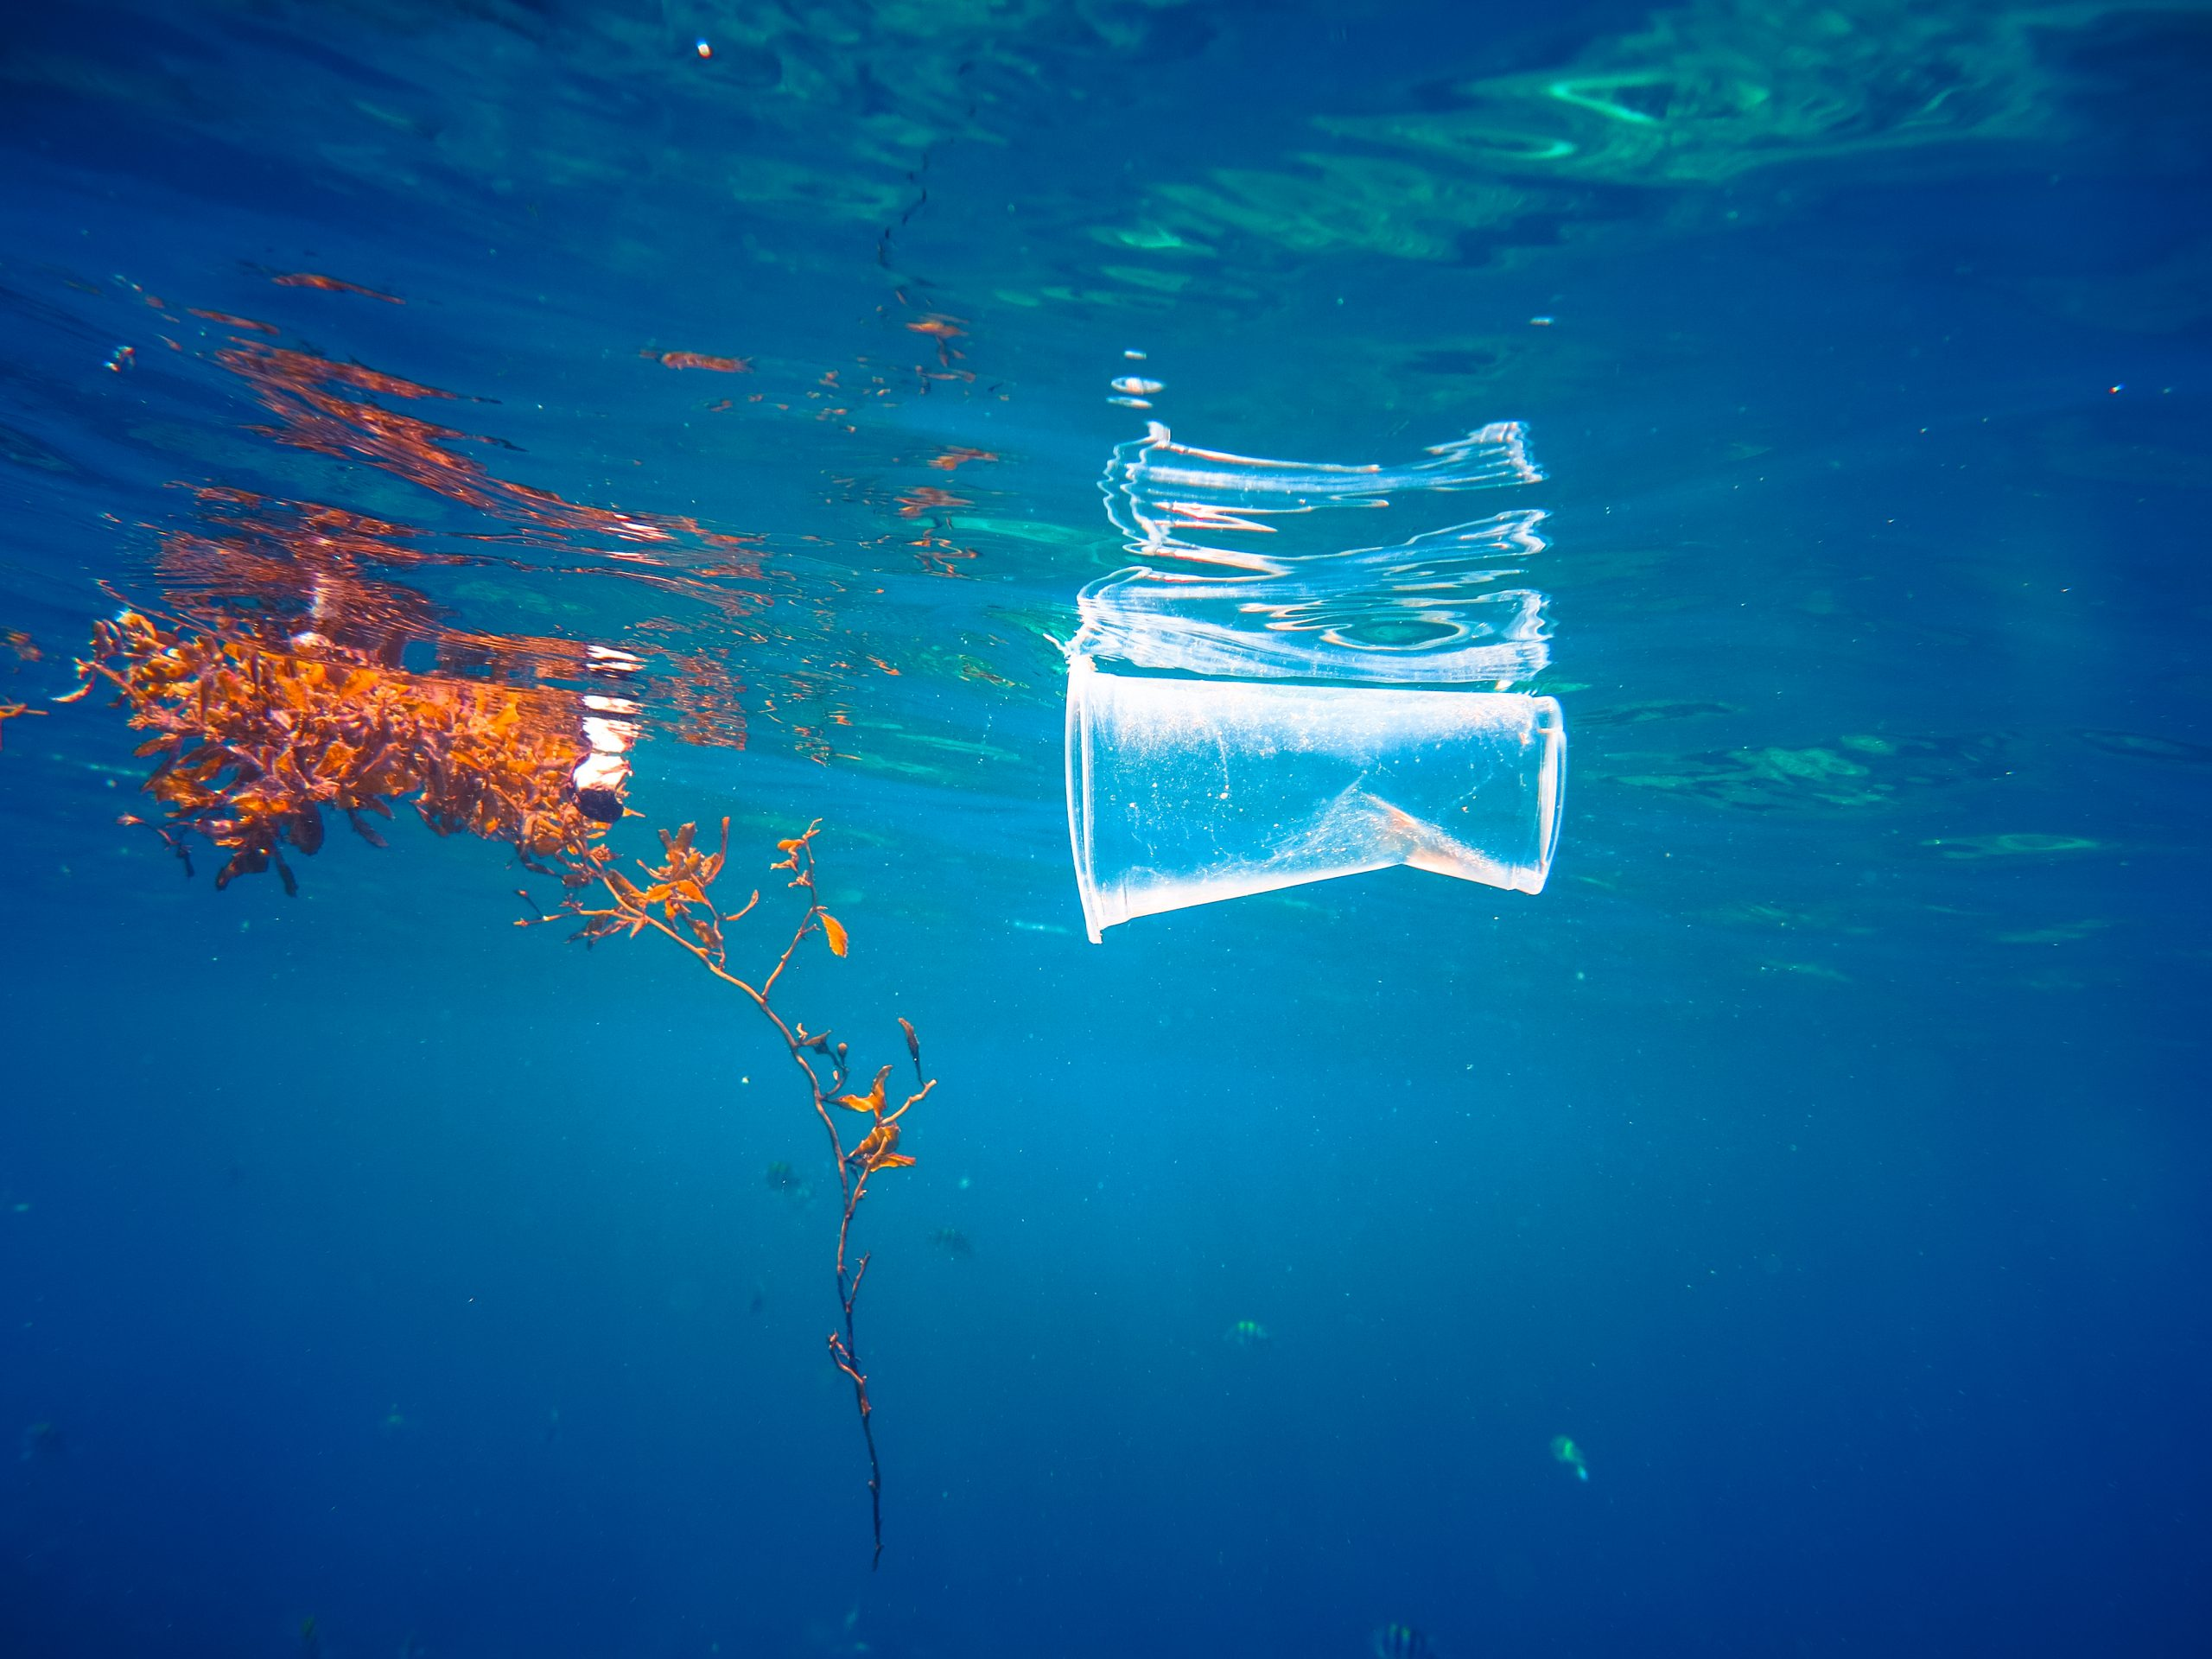 A discarded plastic drinking cup floats at the surface of the Sea.